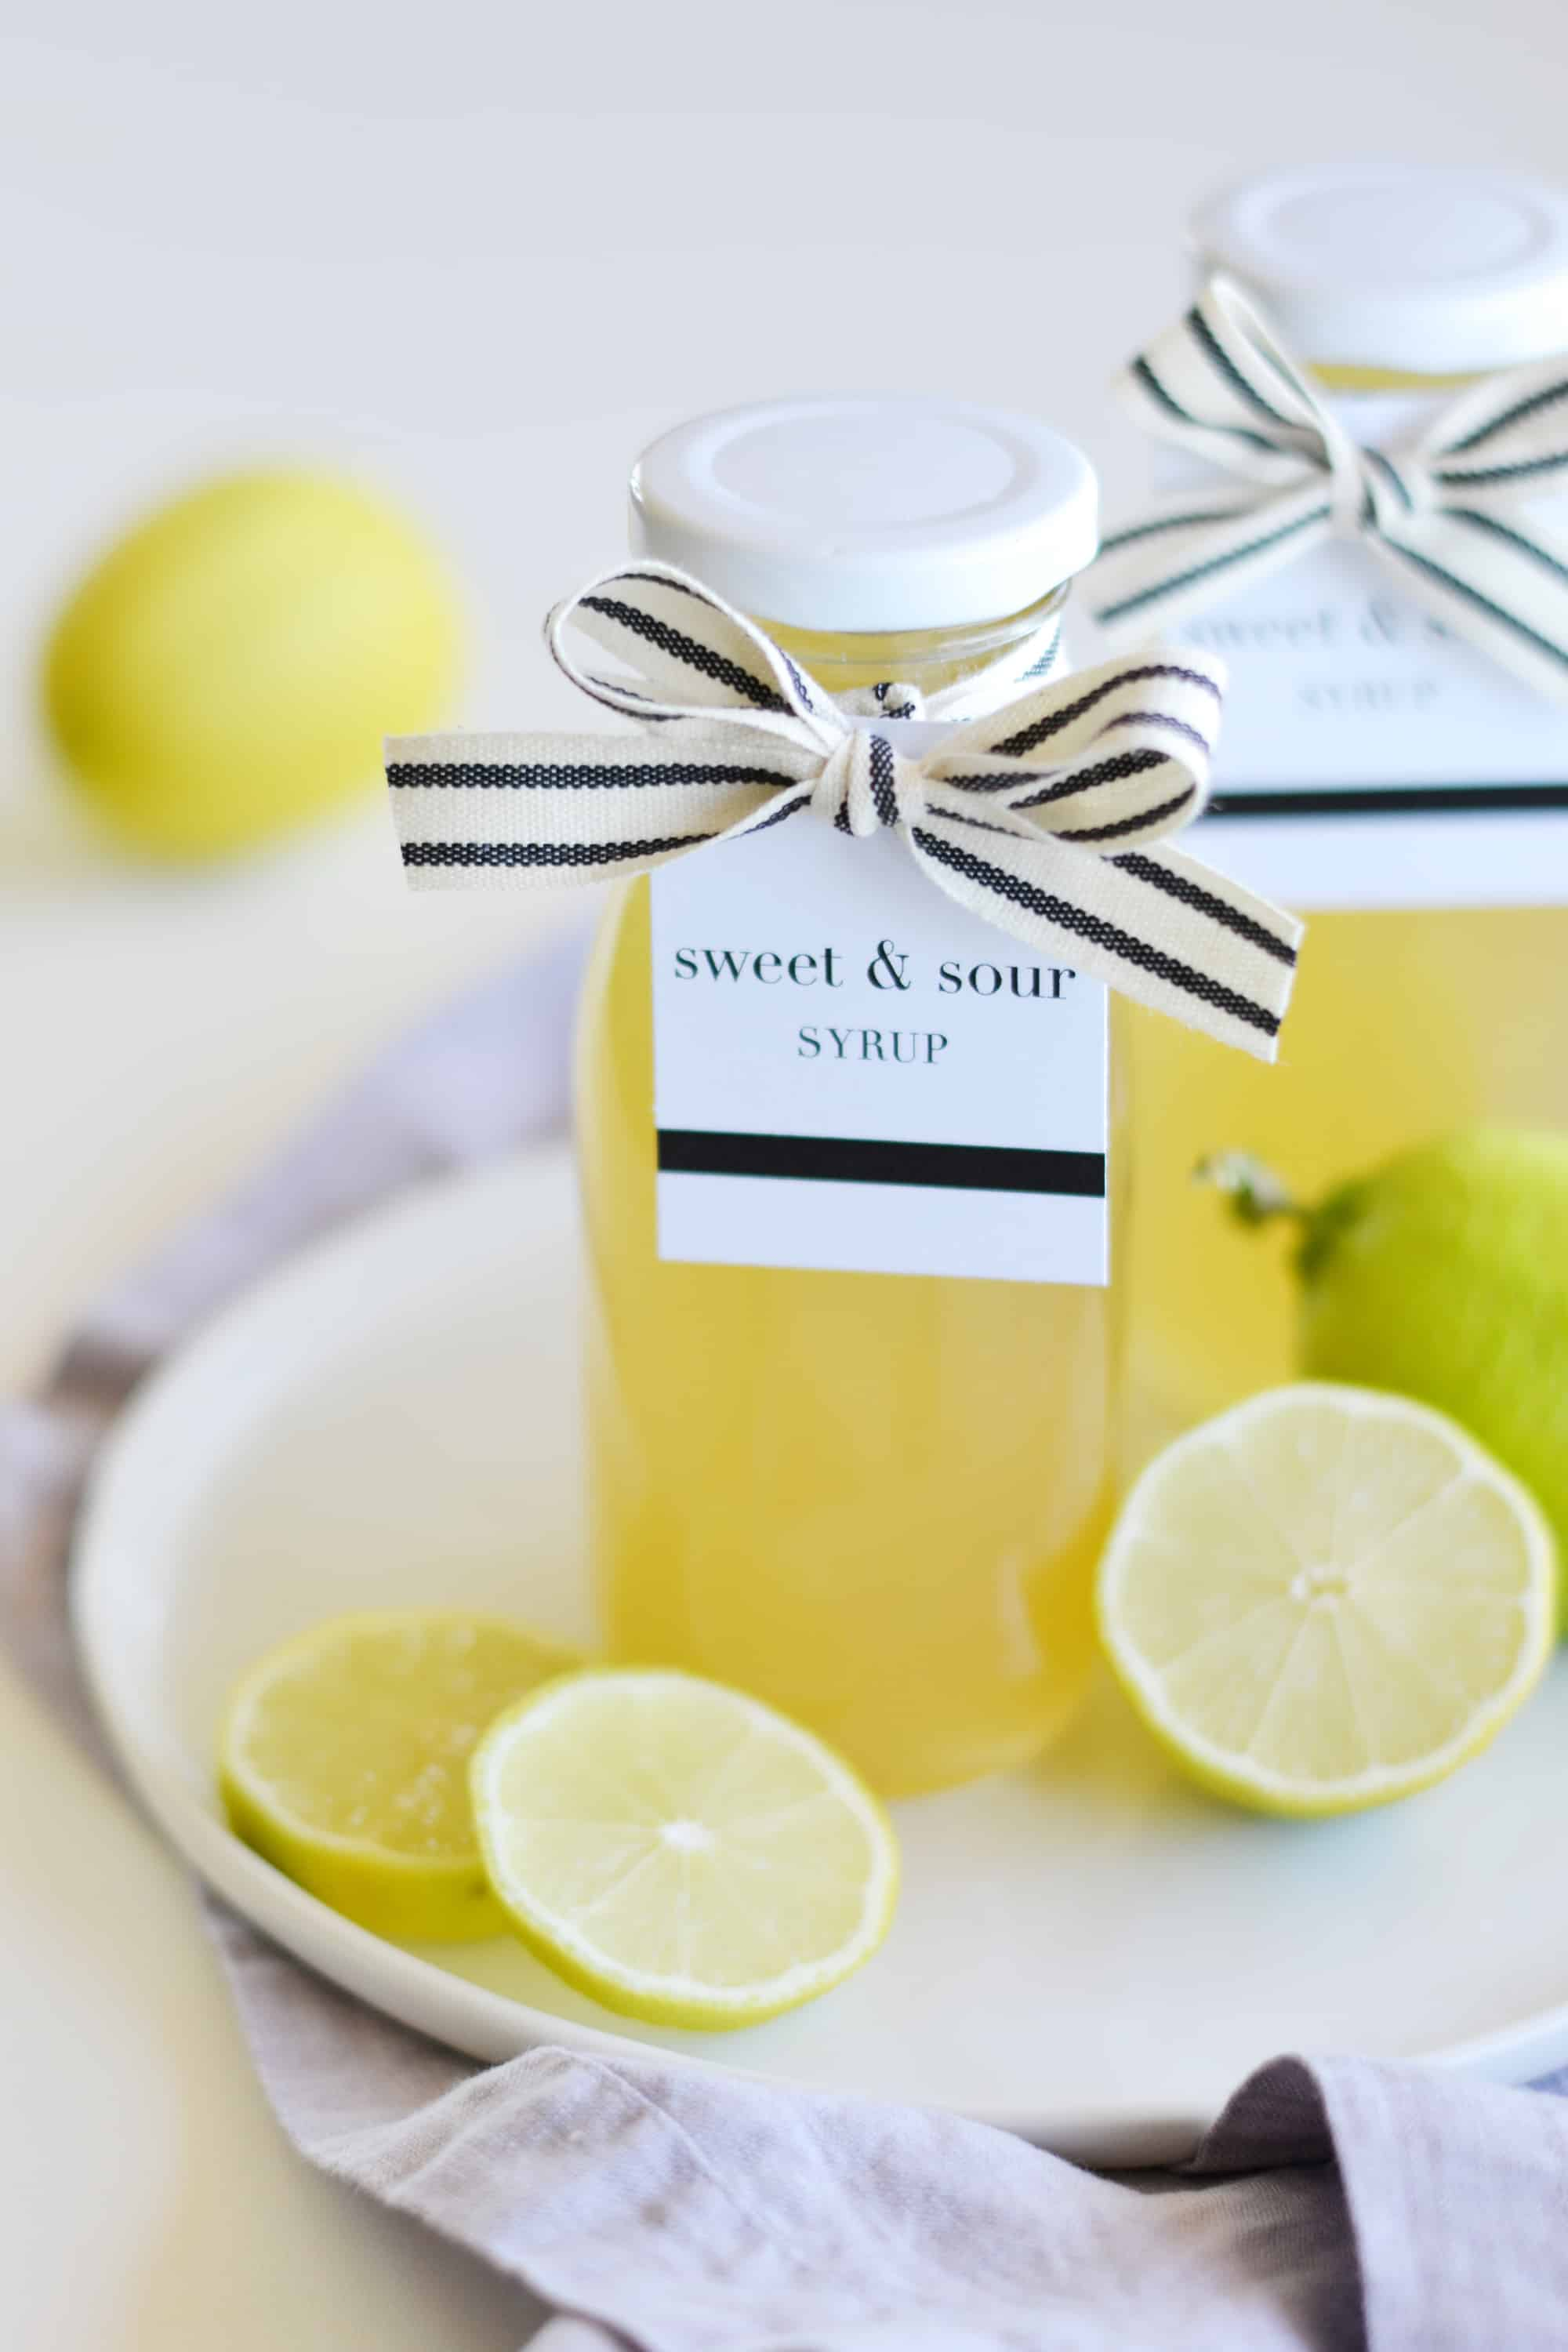 sweet and sour syrup in a jar